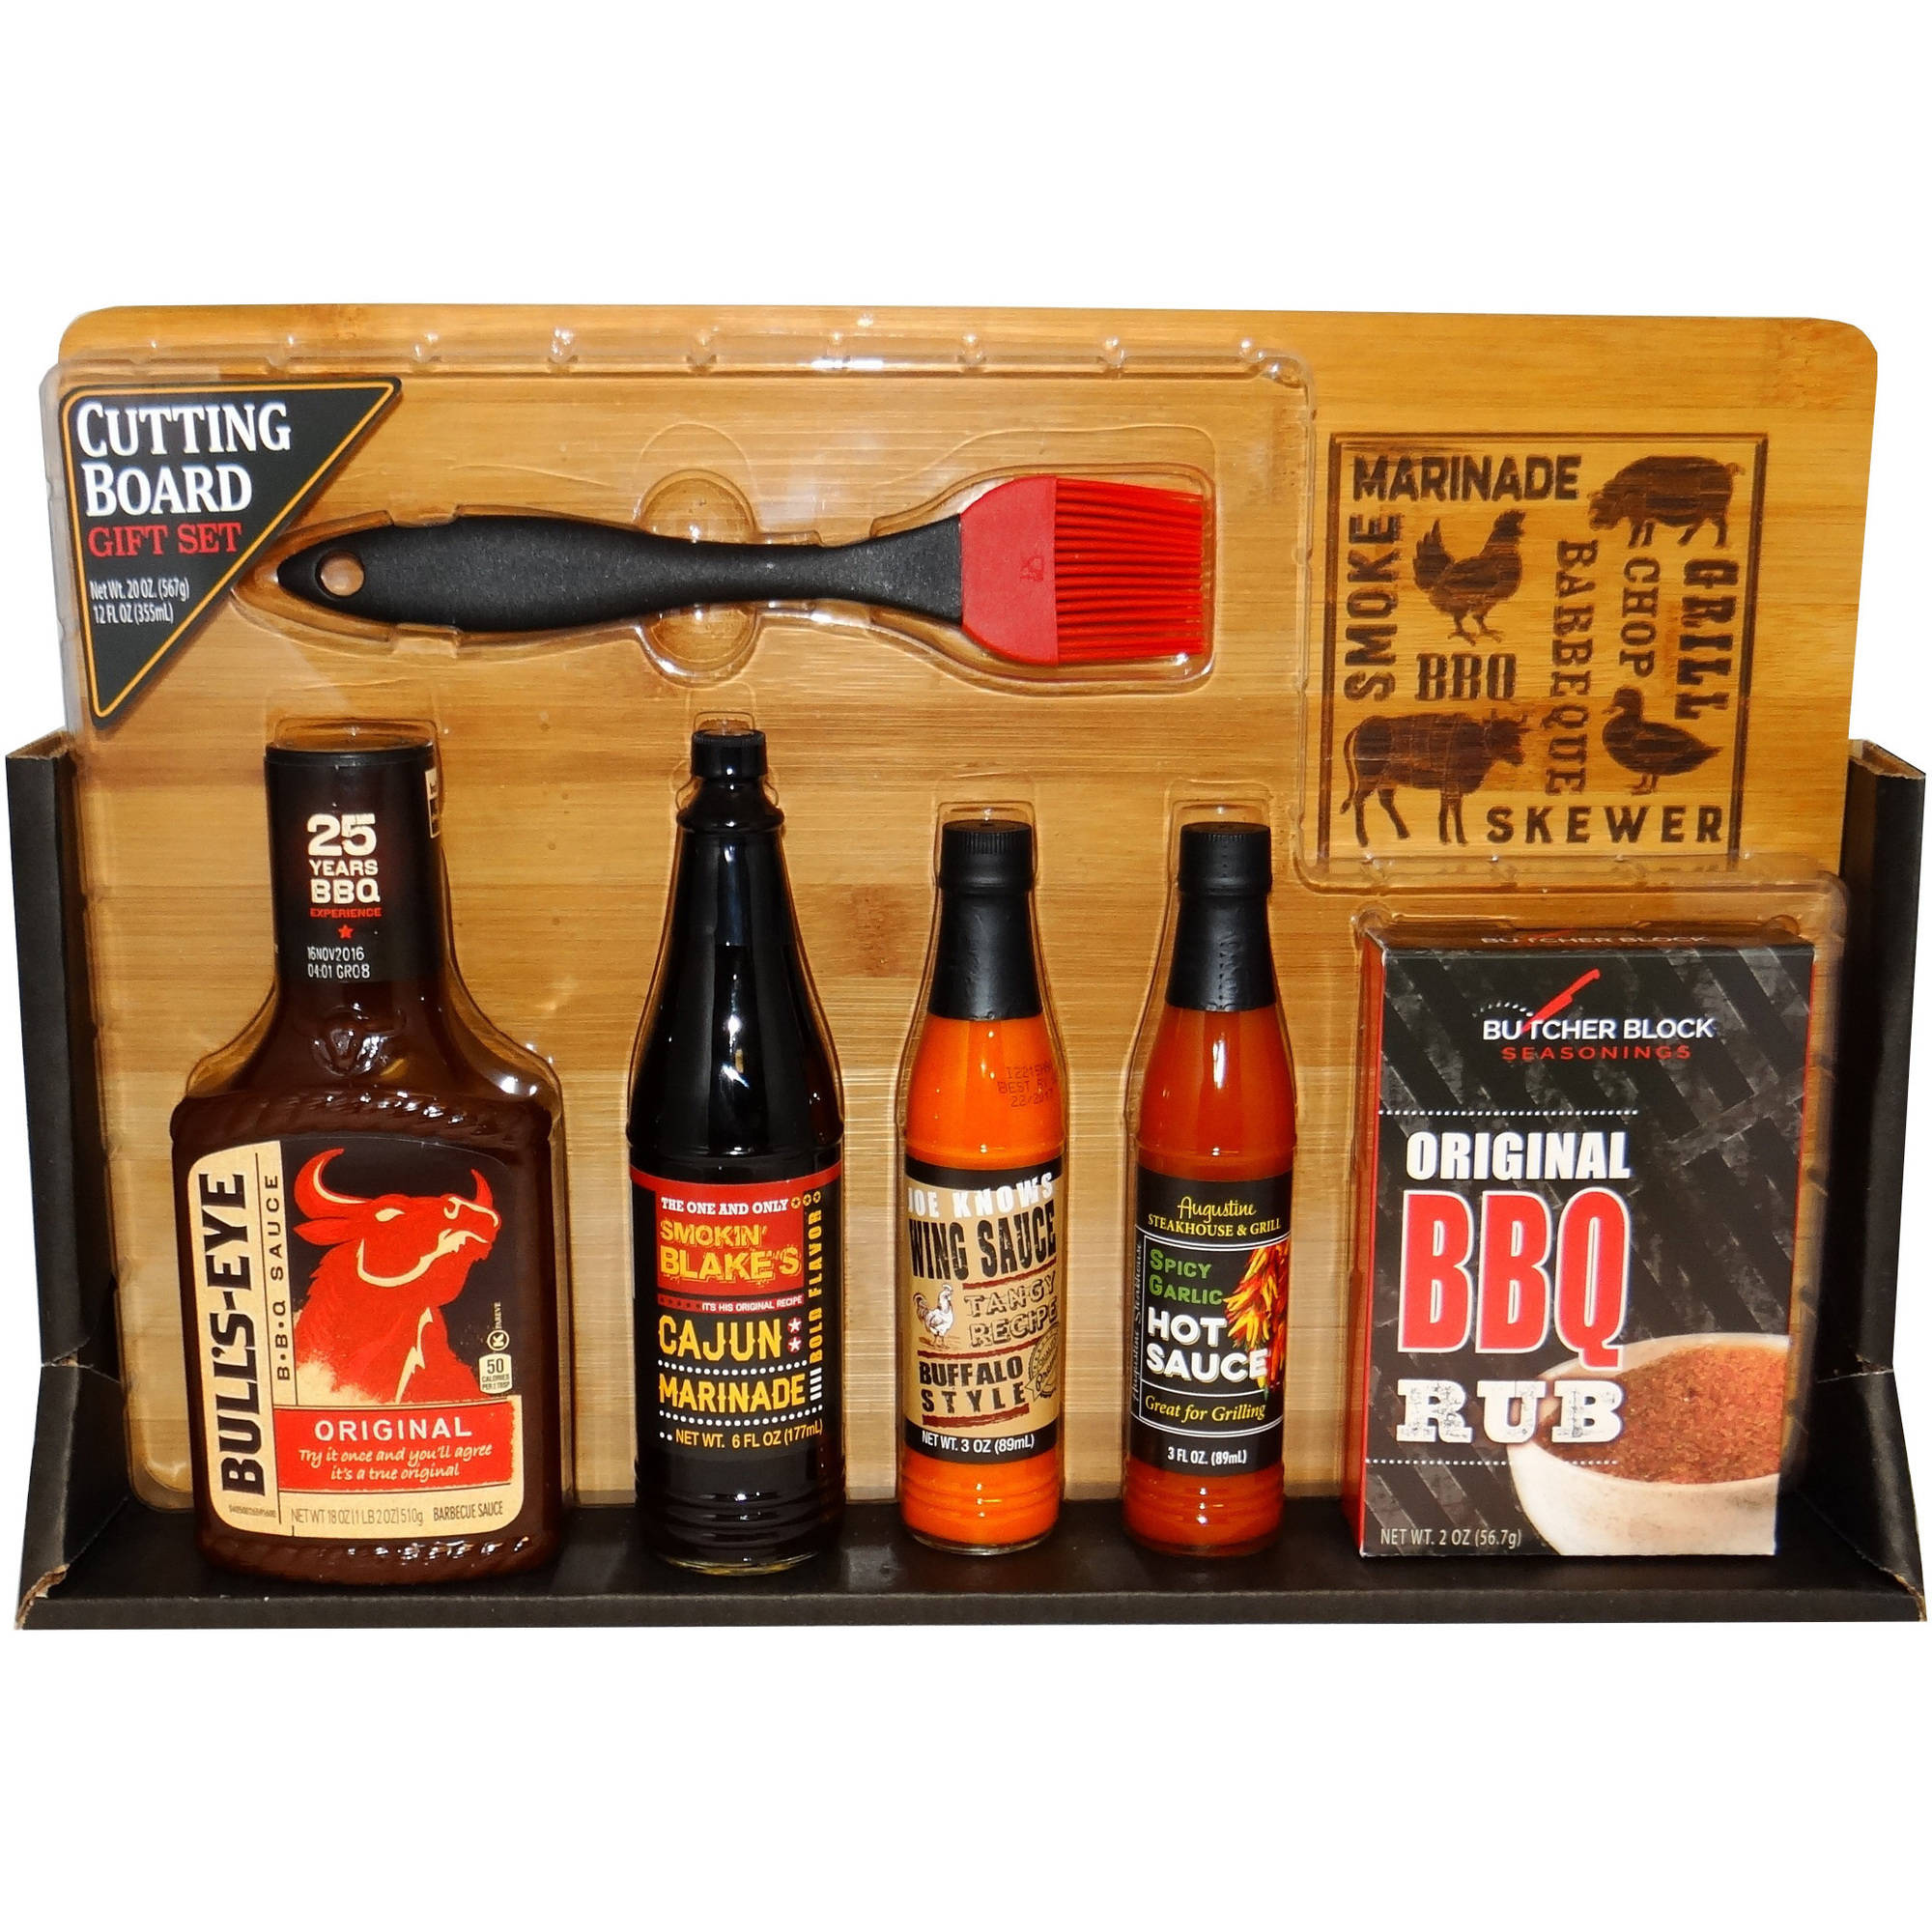 Cutting Board and Spices Holiday Gift Set, 7 pc